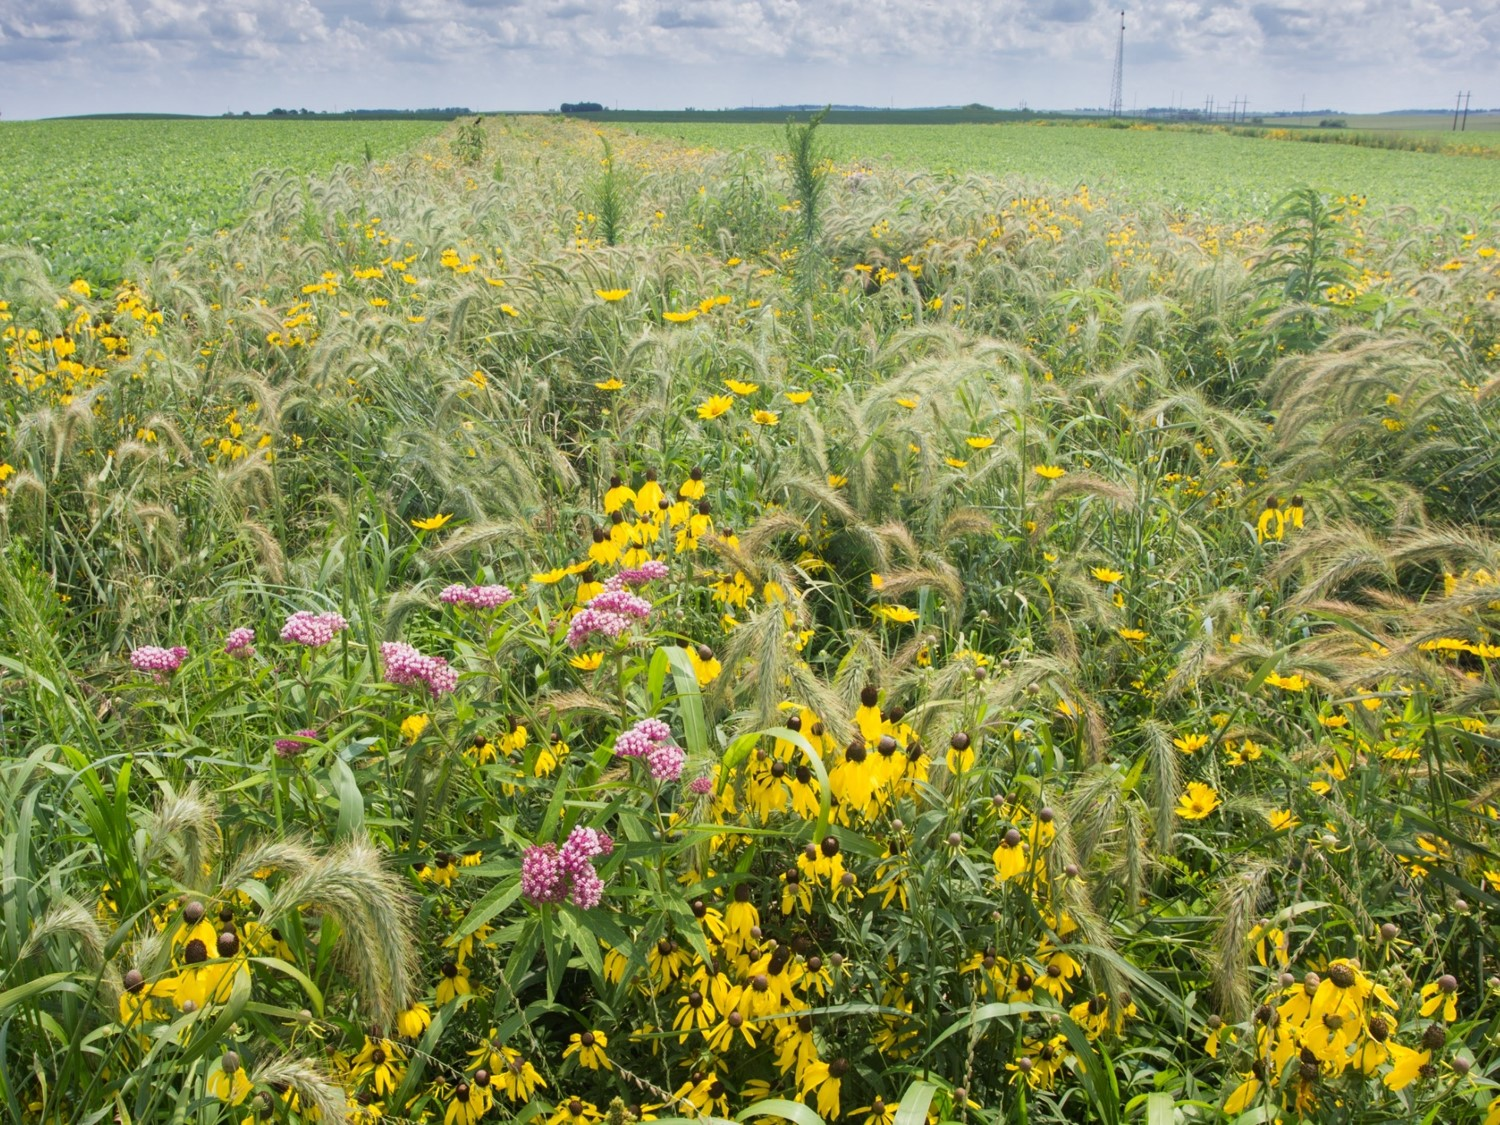 Looking at a diverse prairie strip planting in a corn field. It is a summer day and the flowers are blooming.